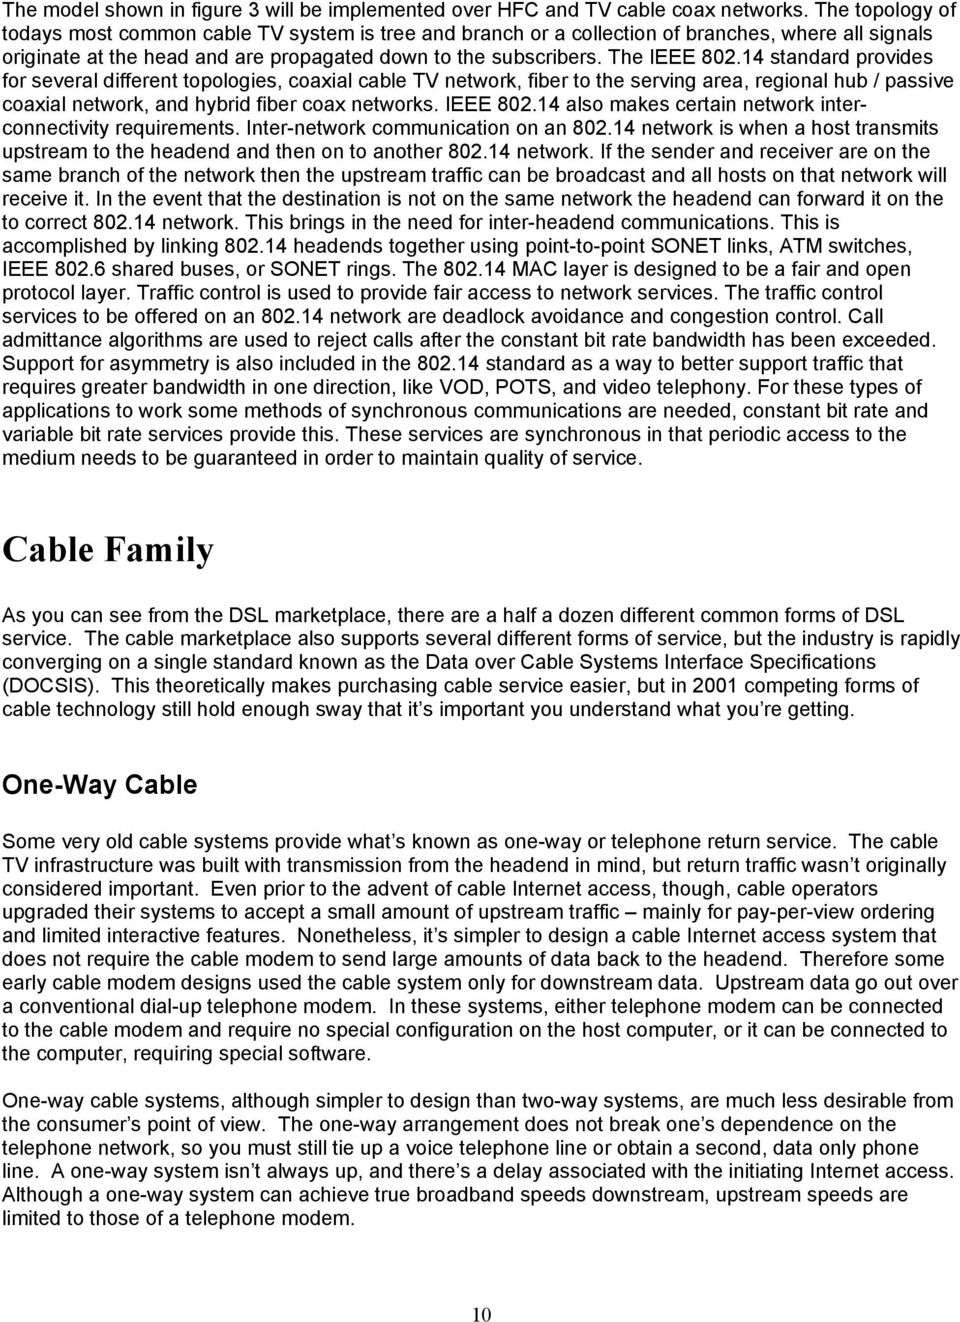 14 standard provides for several different topologies, coaxial cable TV network, fiber to the serving area, regional hub / passive coaxial network, and hybrid fiber coax networks. IEEE 802.